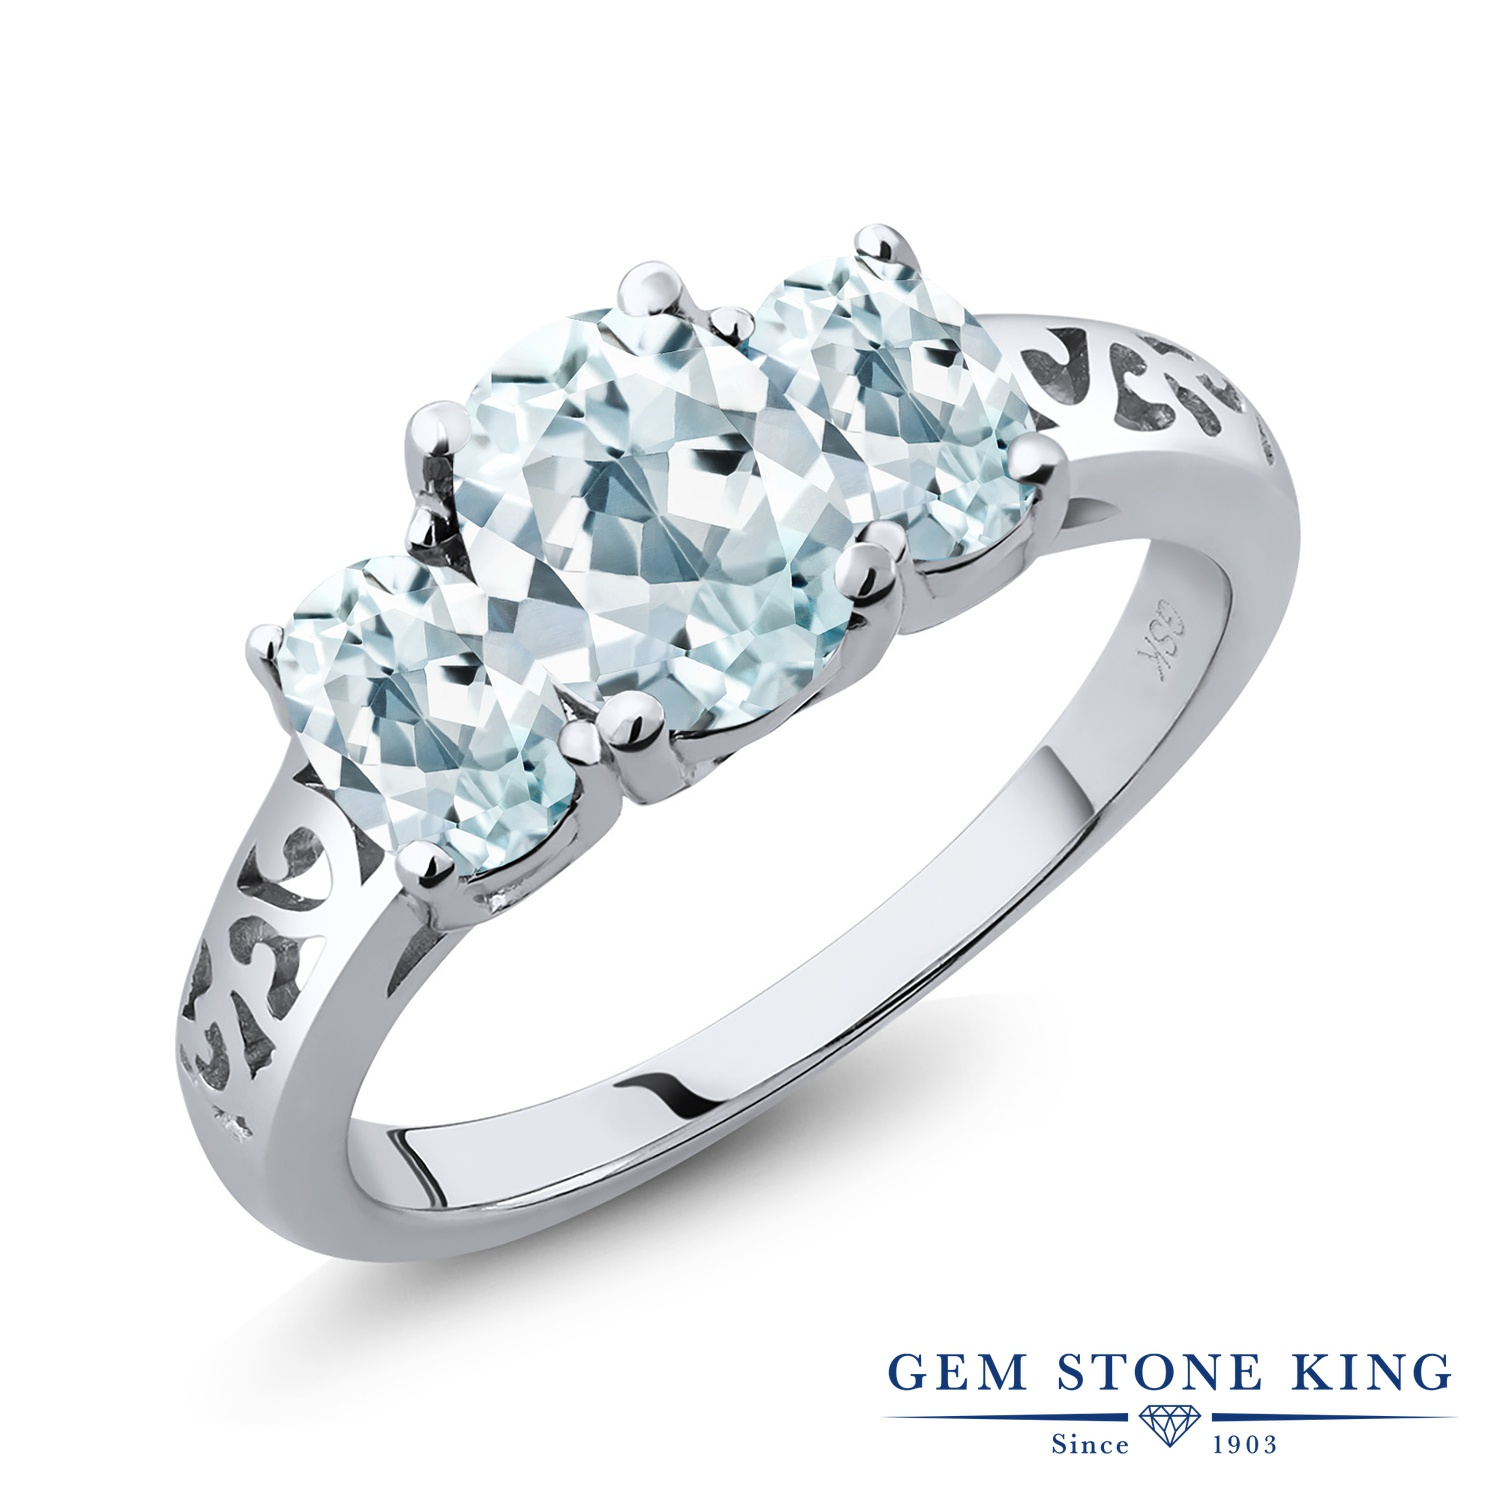 【10%OFF】 Gem Stone King 1.96カラット 天然 アクアマリン 指輪 リング レディース シルバー925 大粒 シンプル スリーストーン 天然石 3月 誕生石 クリスマスプレゼント 女性 彼女 妻 誕生日